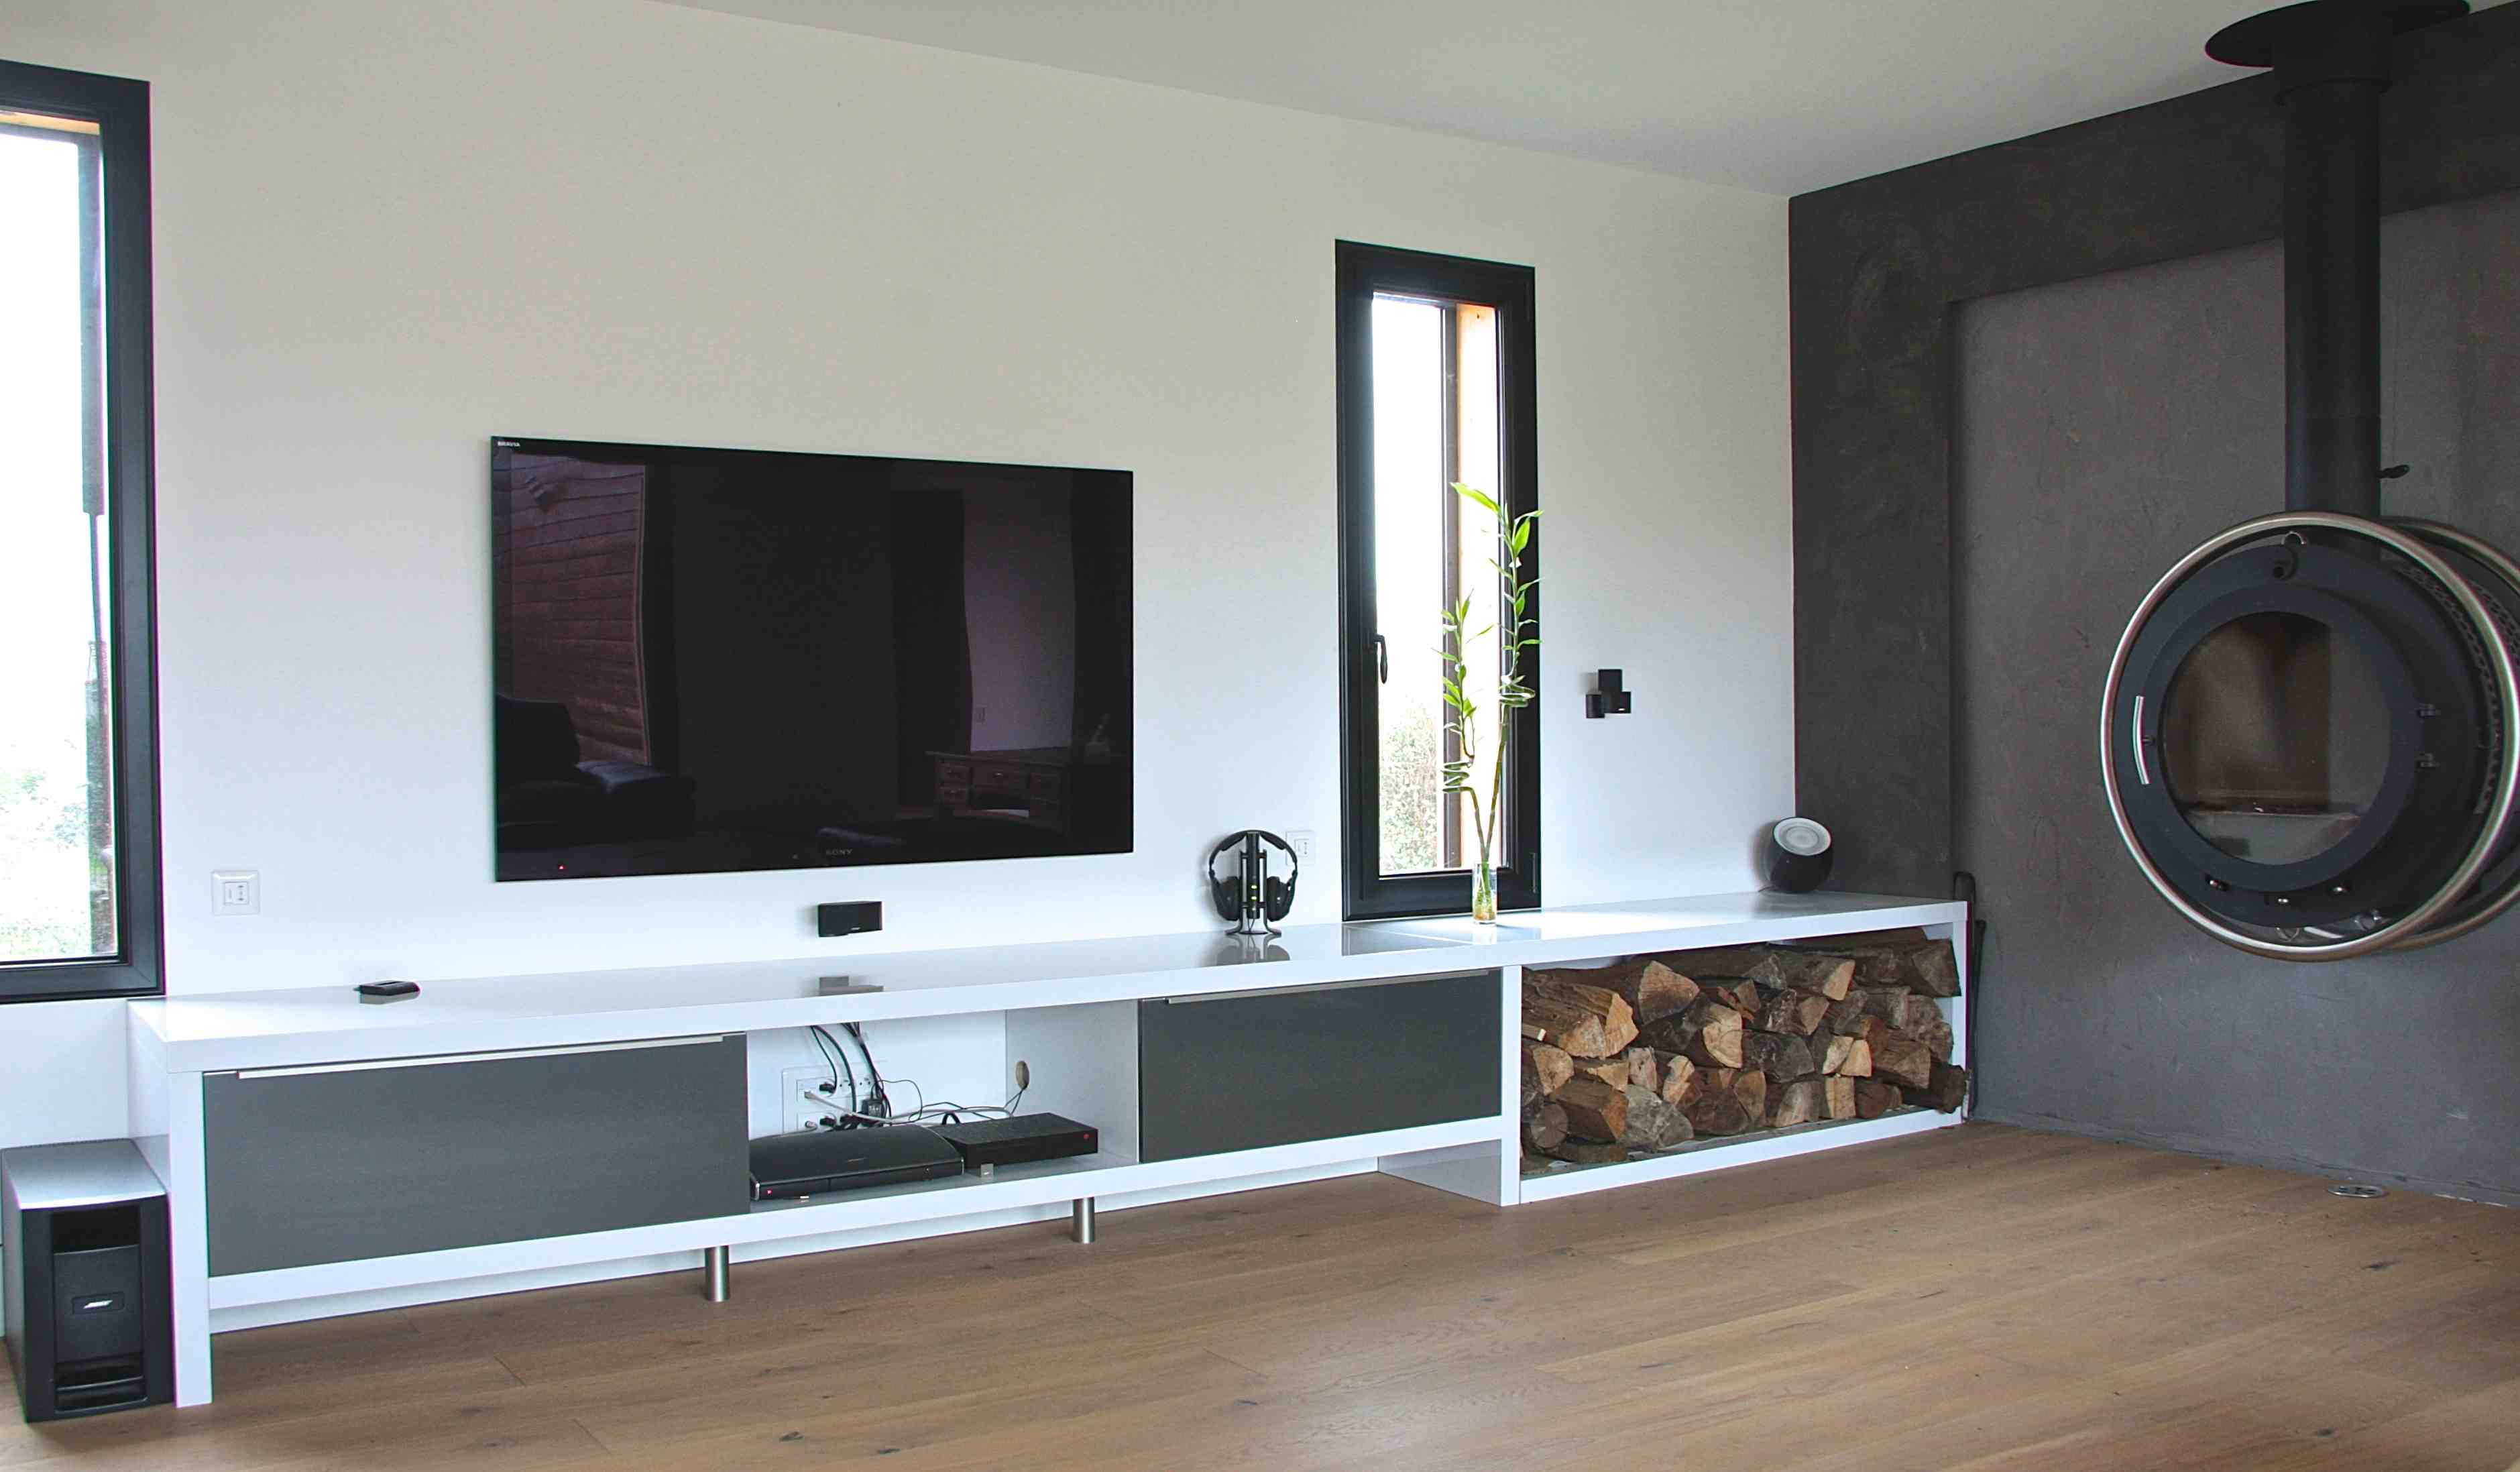 artisan-propose-amenagement-et-agencement-d-interieur